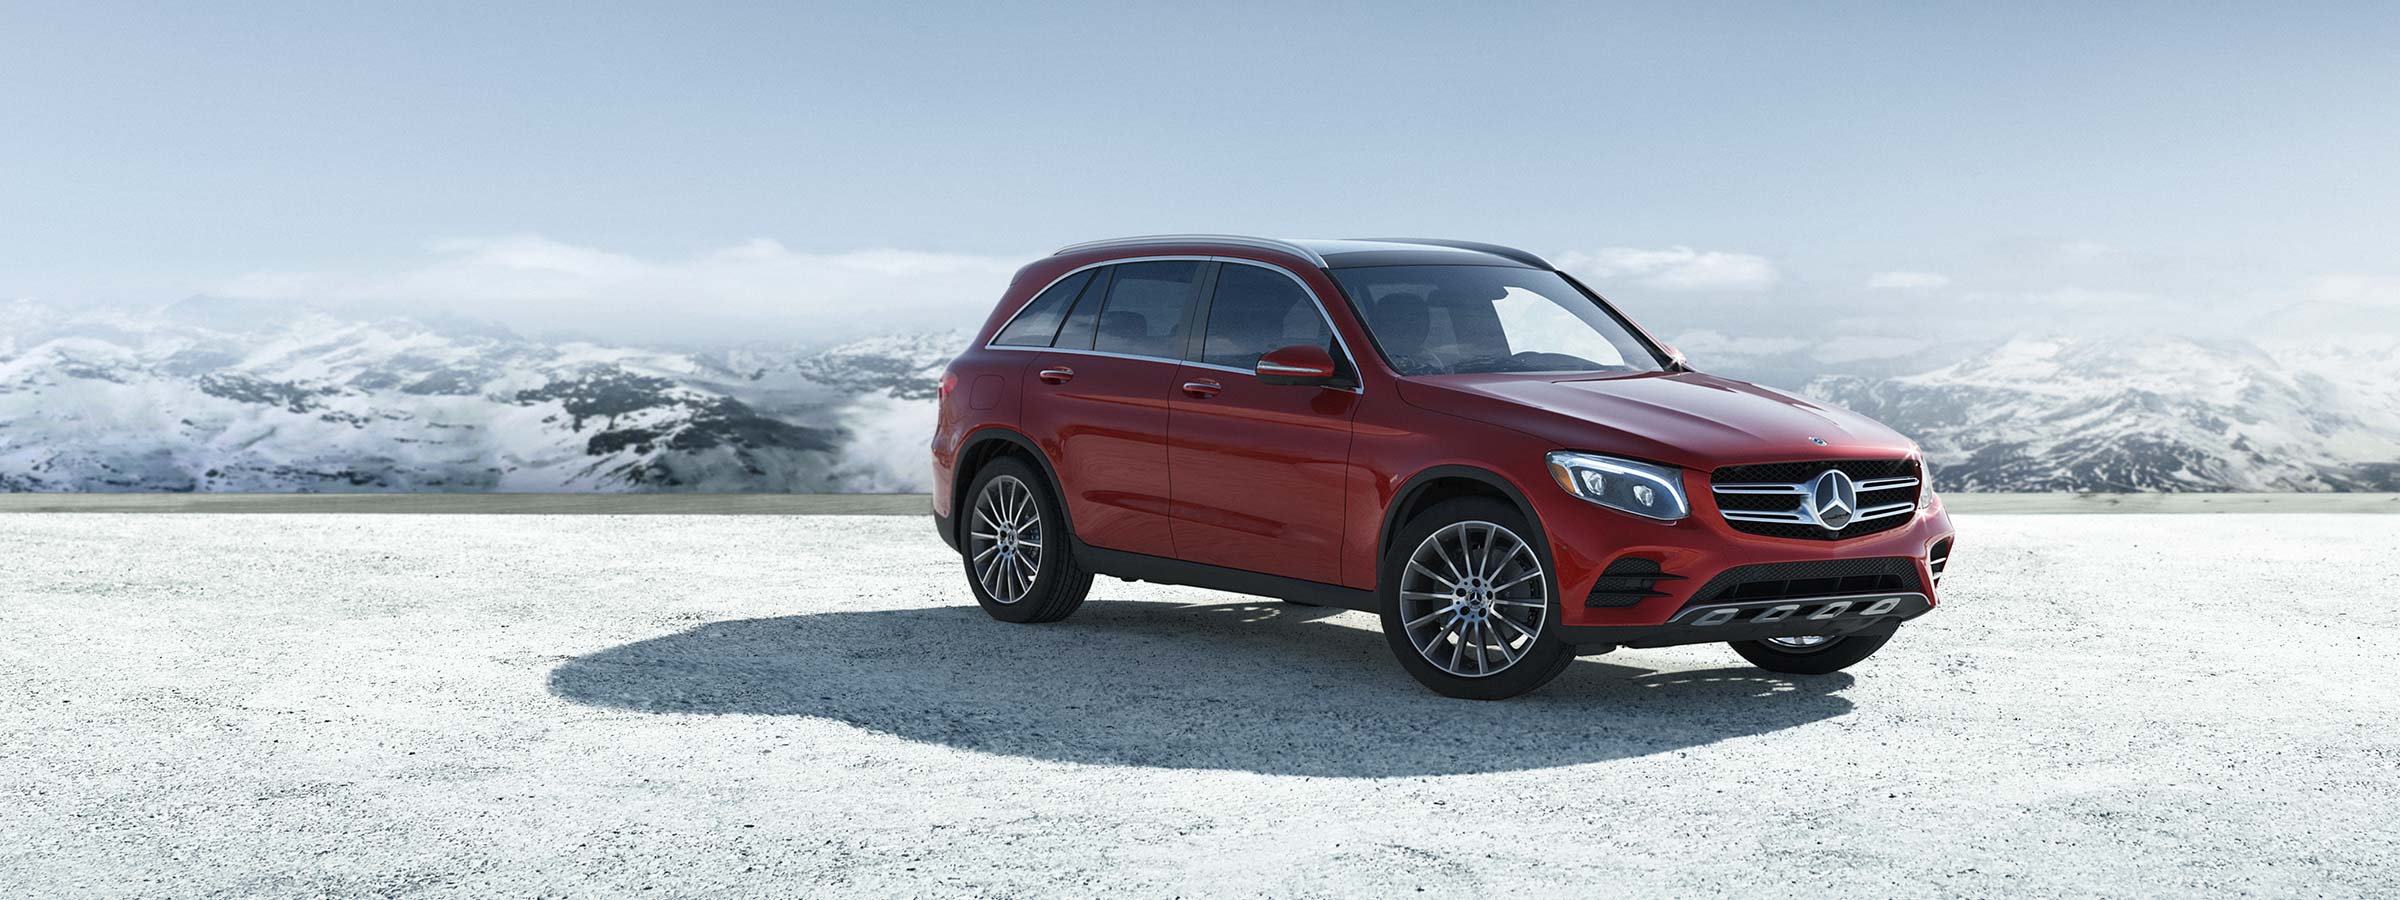 A red 2019 GLC 300 SUV parked in front of snow-covered mountains.